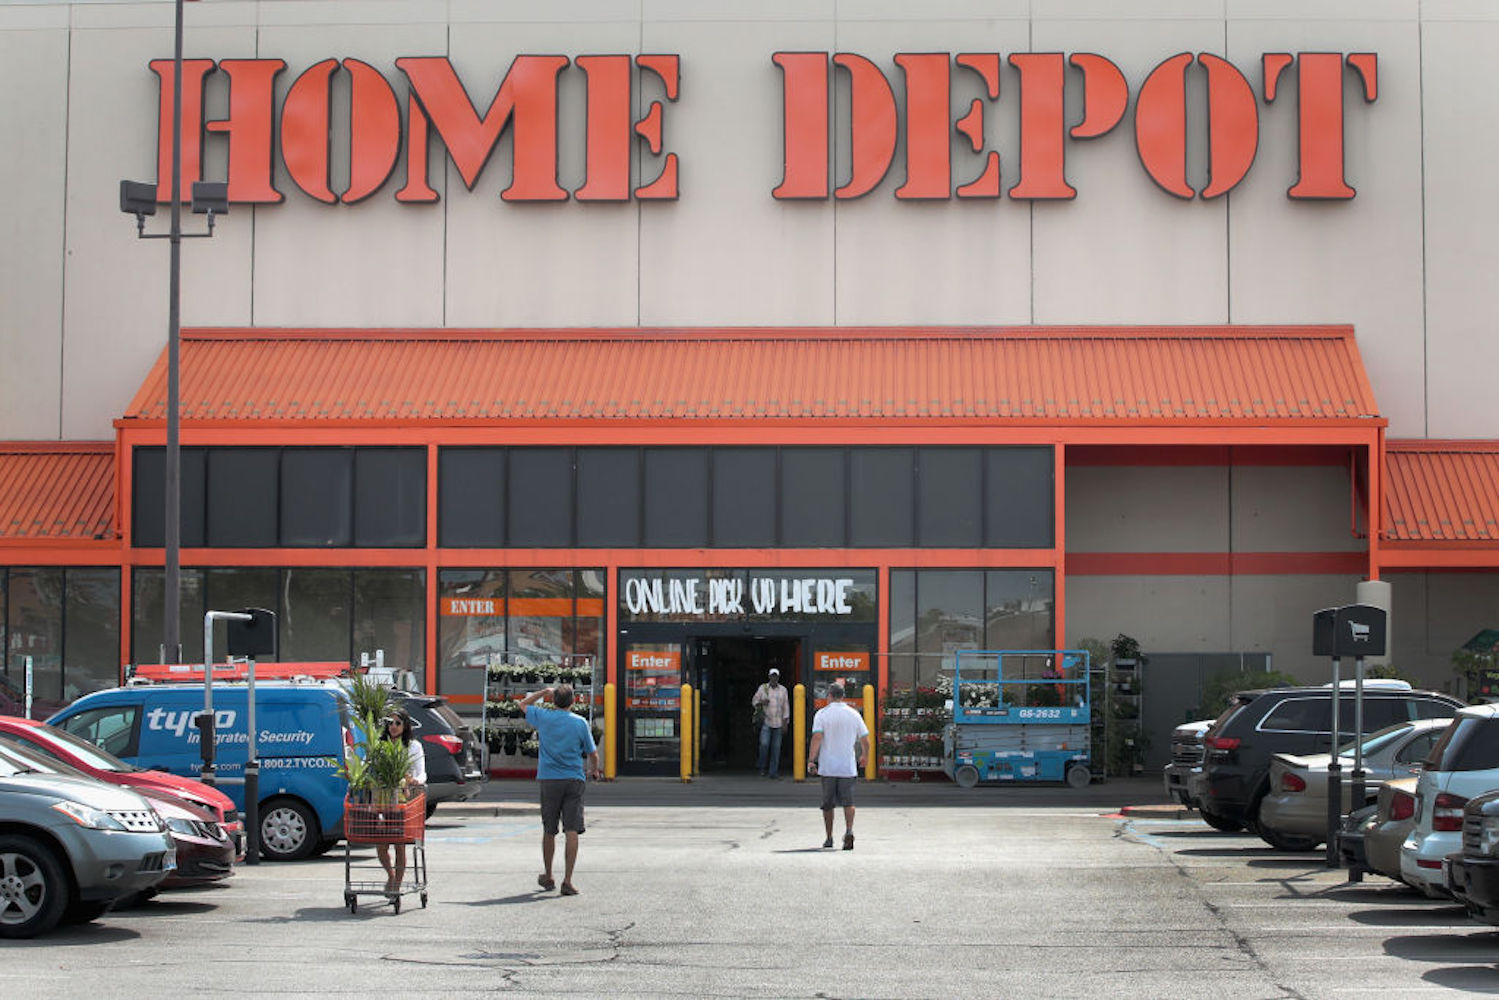 Home Depot Bought The Company Store—and It's About To